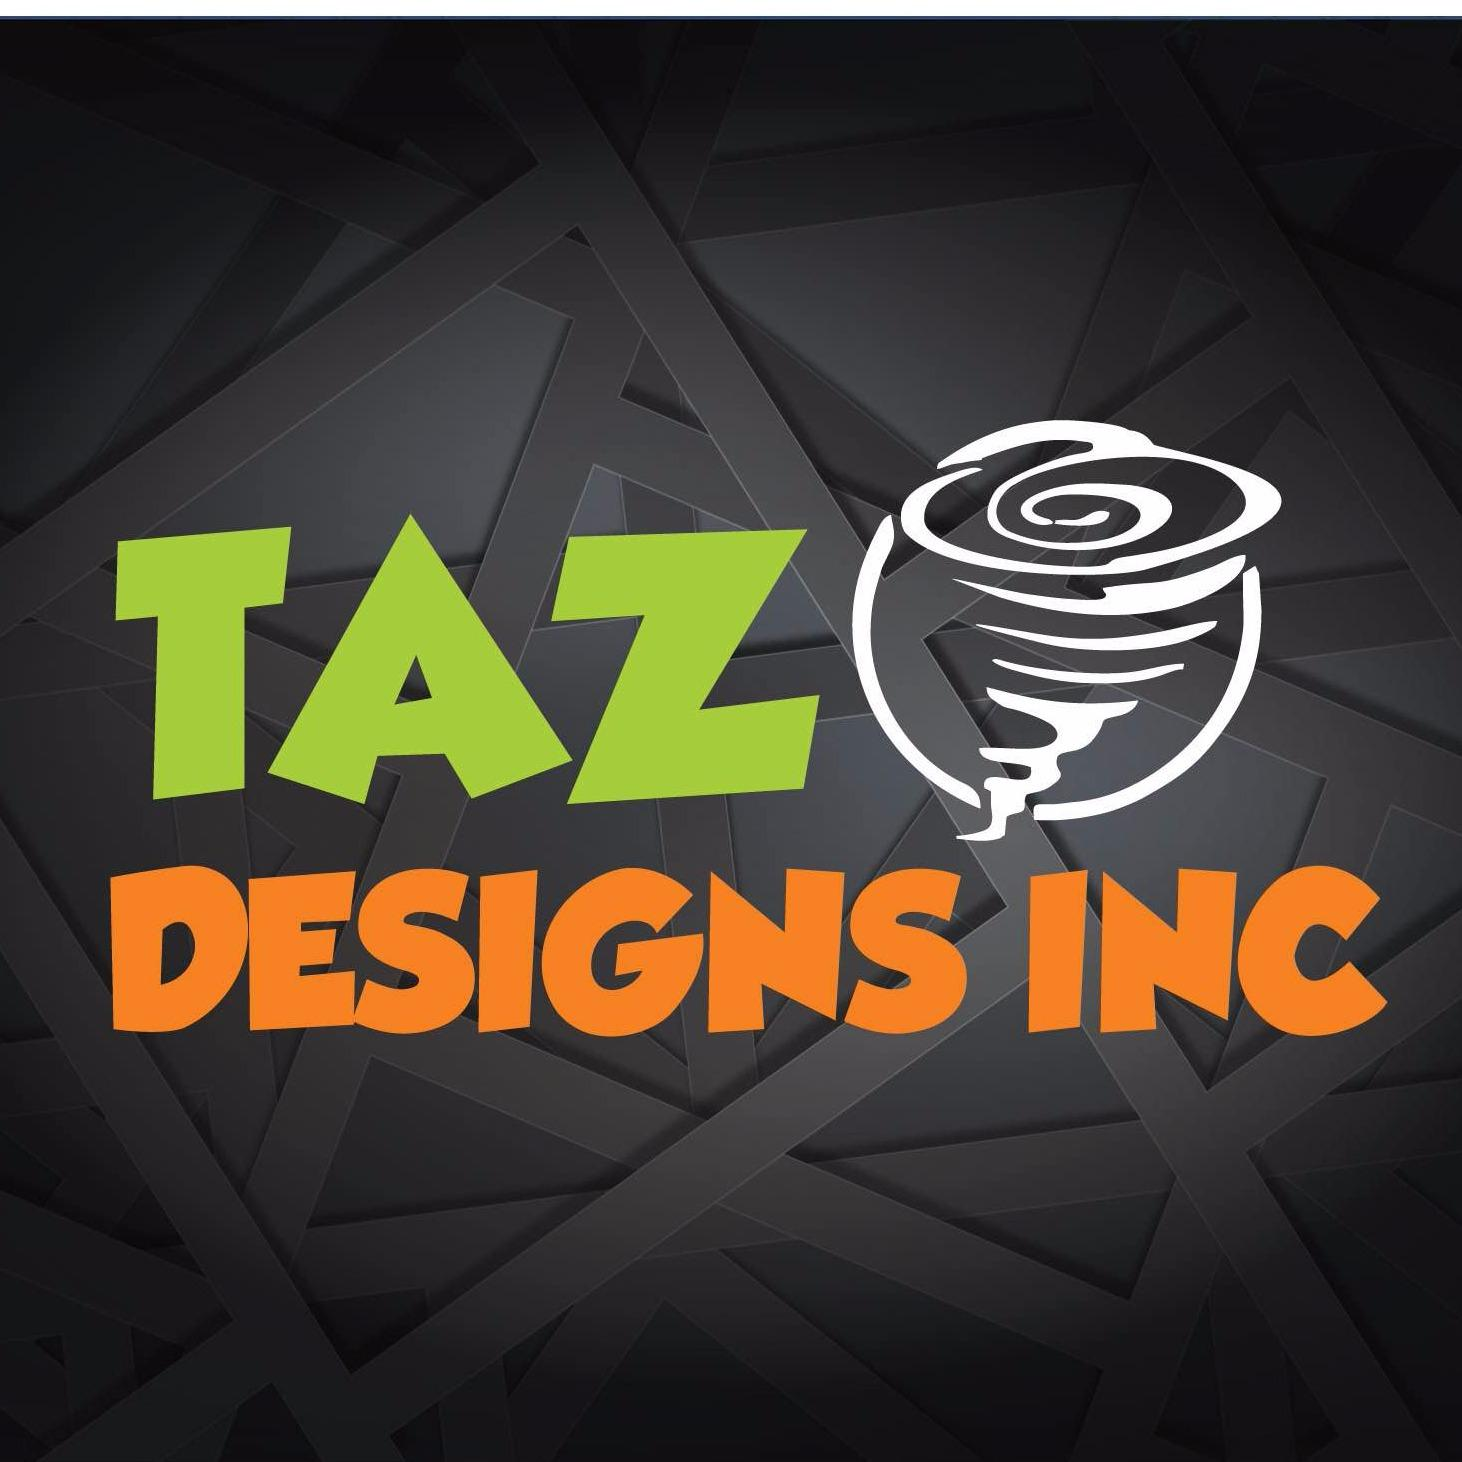 Taz Designs Inc